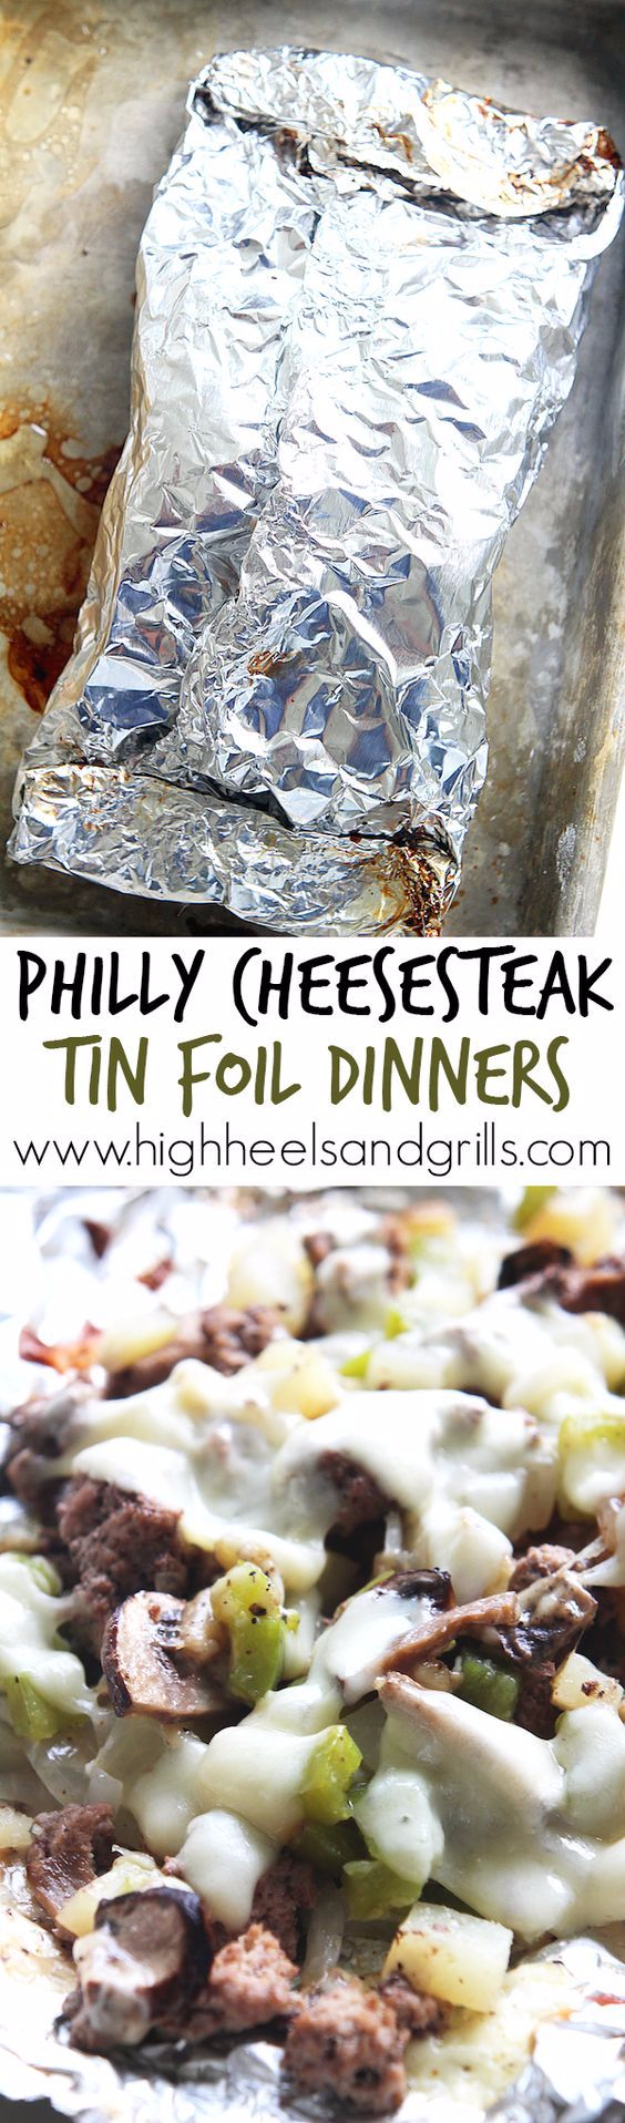 DIY Tin Foil Camping Recipes - Philly Cheesesteak Tin Foil Dinners - Tin Foil Dinners, Ideas for Camping Trips healthy Easy Make Ahead Recipe Ideas for the Campfire. Breakfast, Lunch, Dinner and Dessert, #recipes #camping